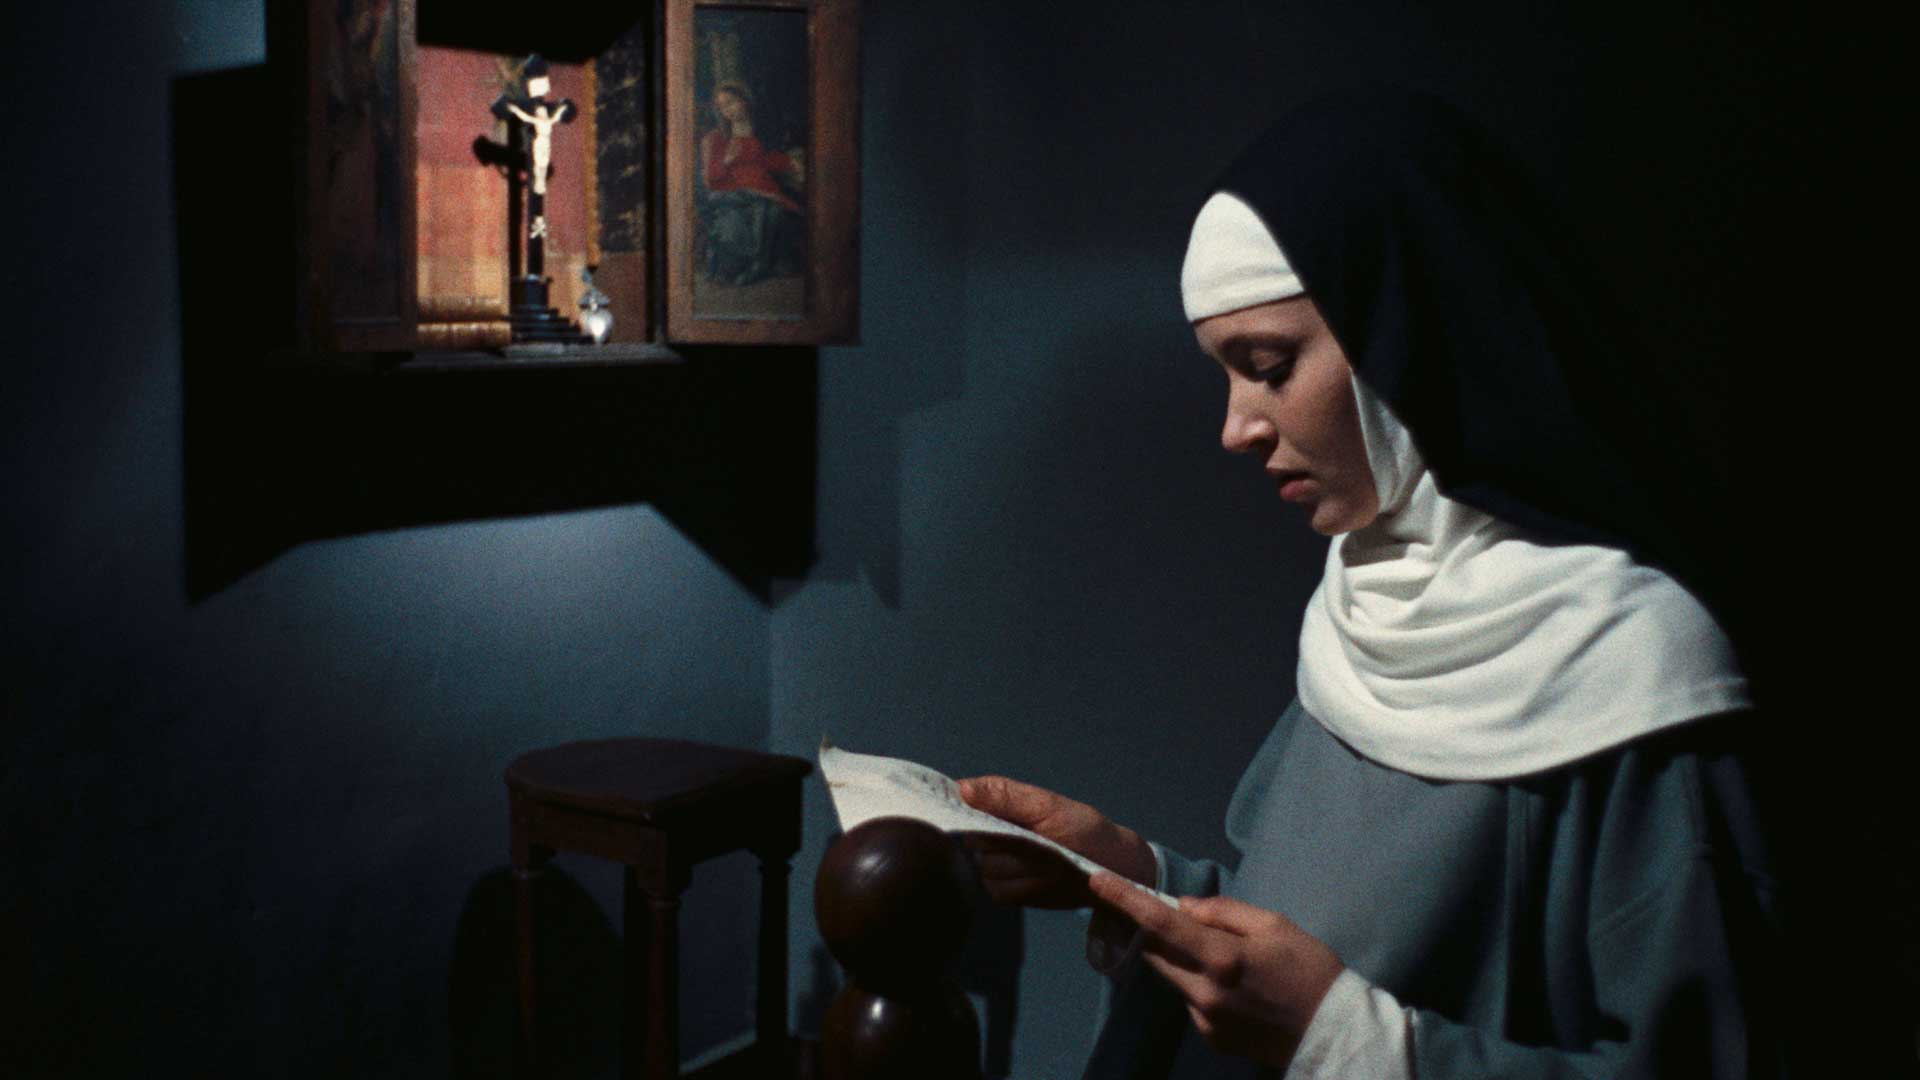 La Religieuse de Jacques Rivette